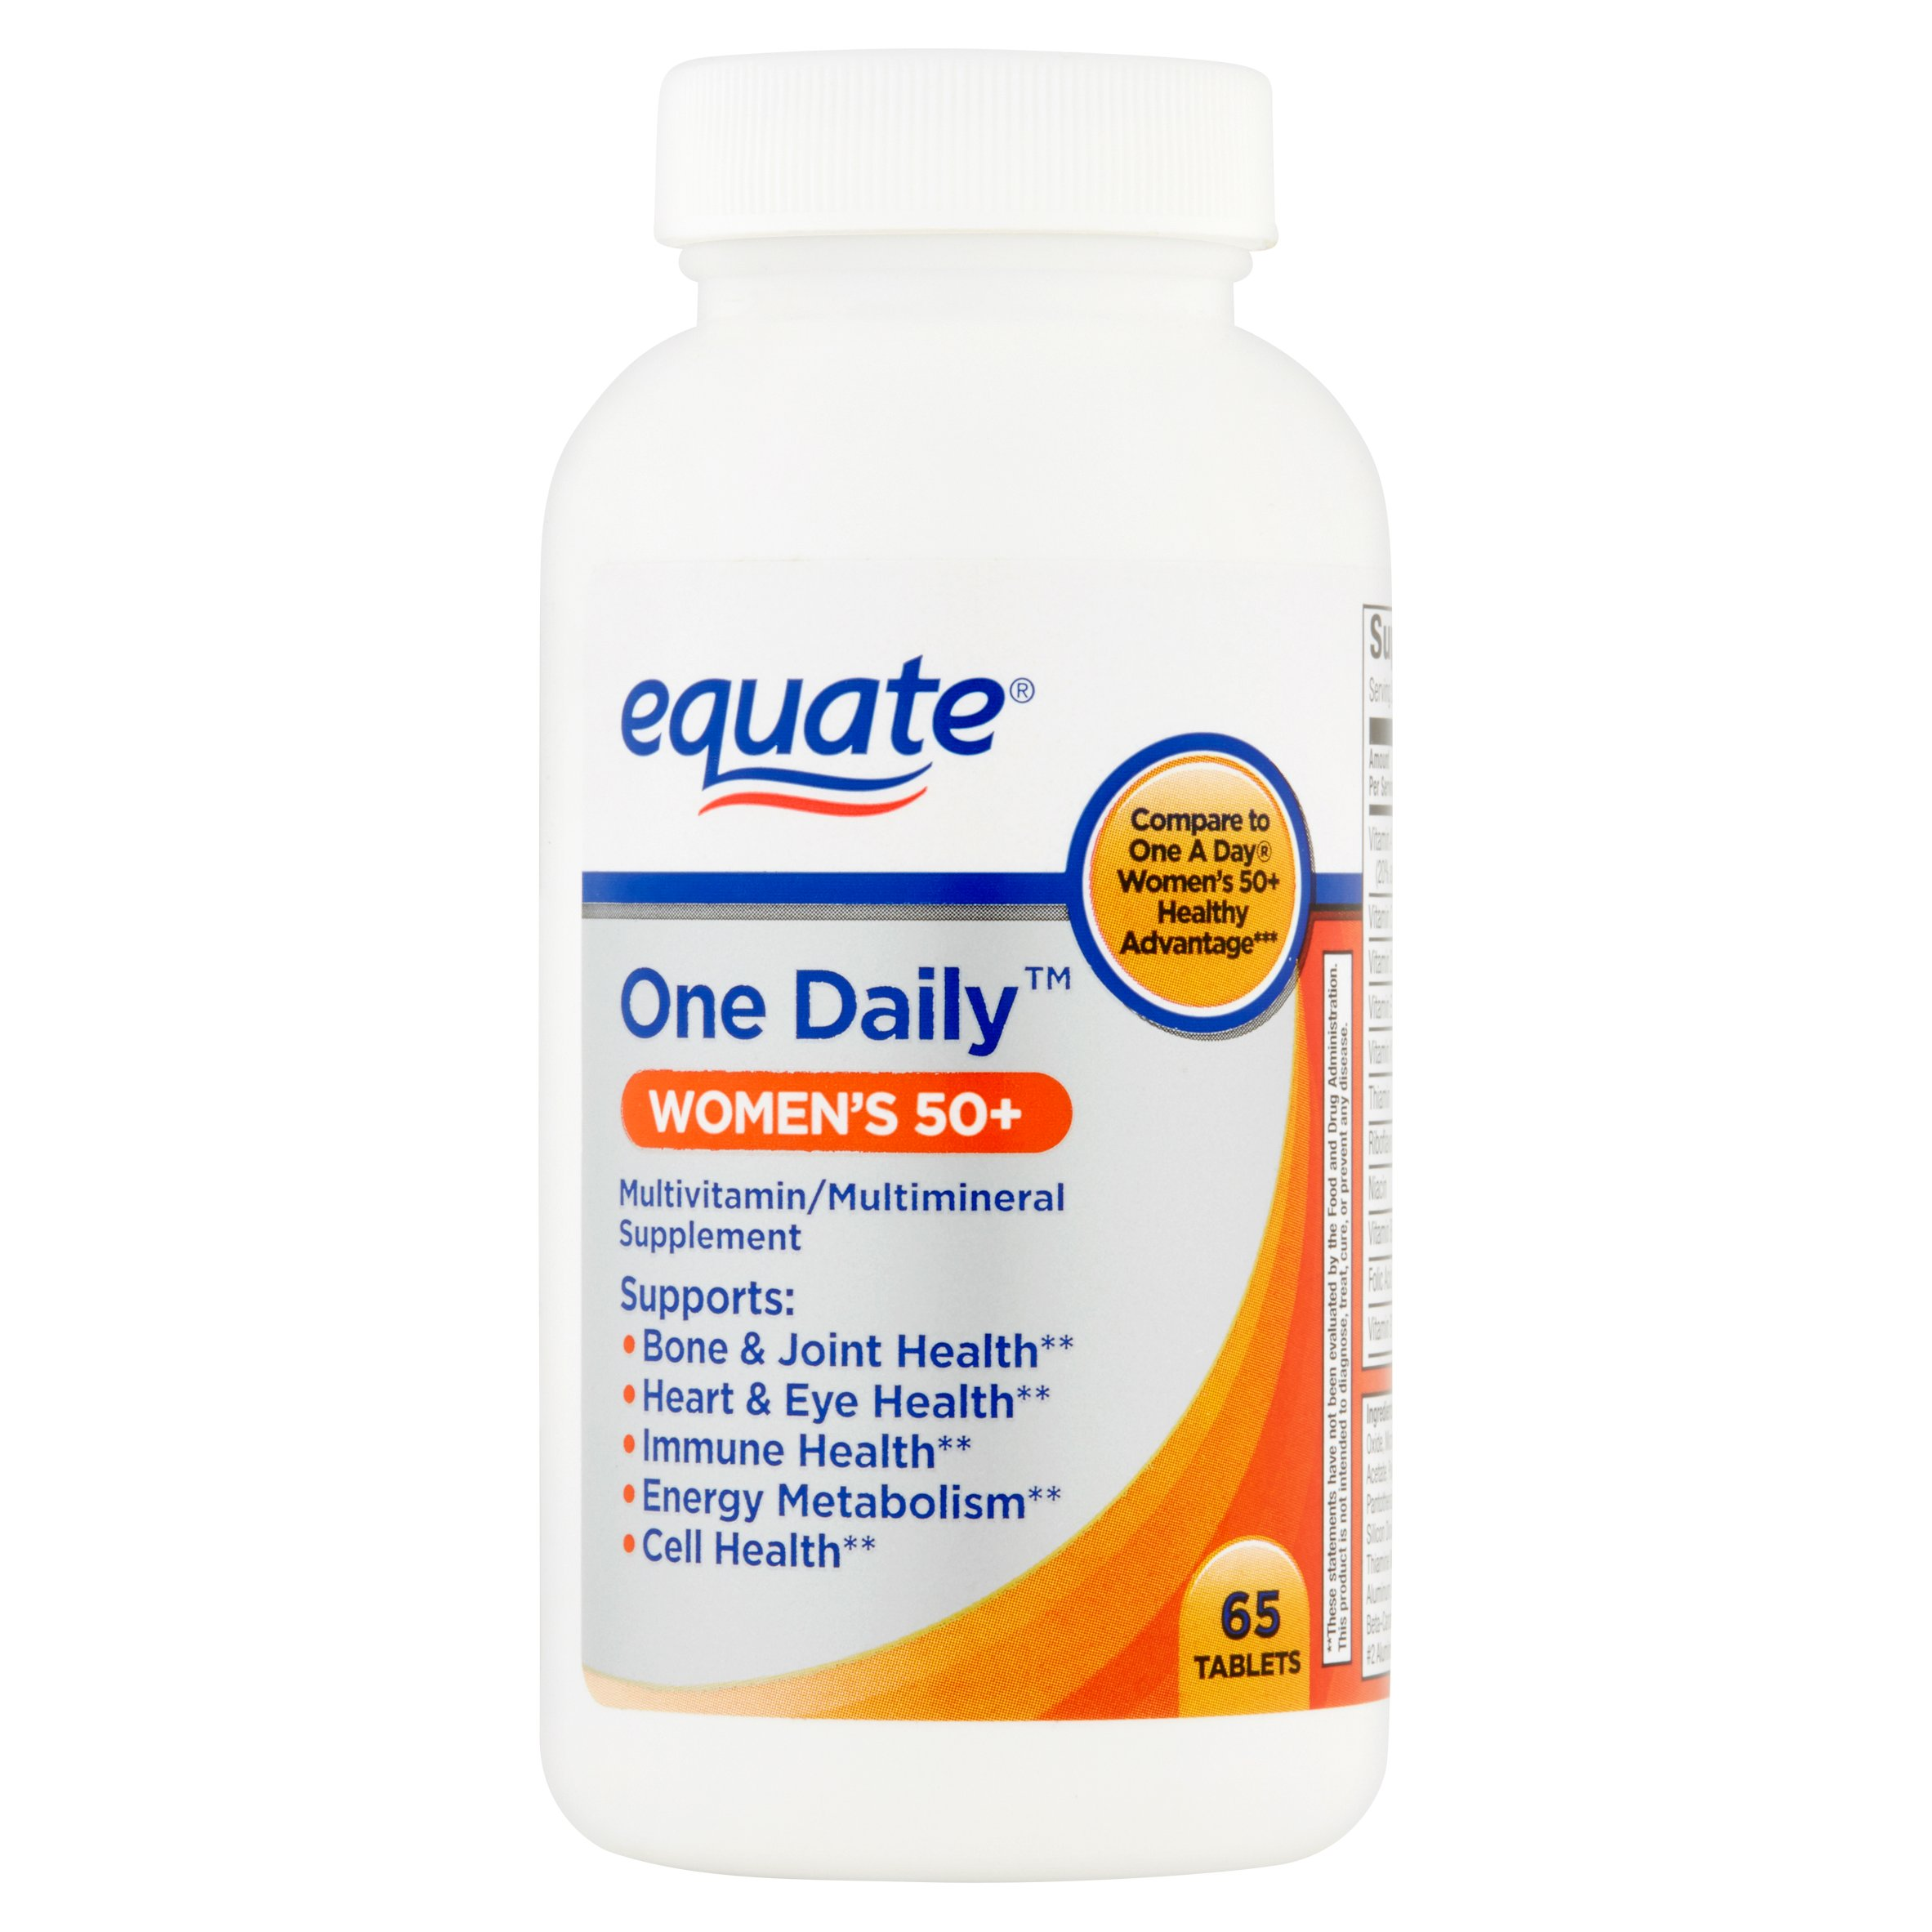 (2 Pack) Equate Women's 50+ One Daily Multivitamin/Multimineral Supplement Tablets, 65 Ct